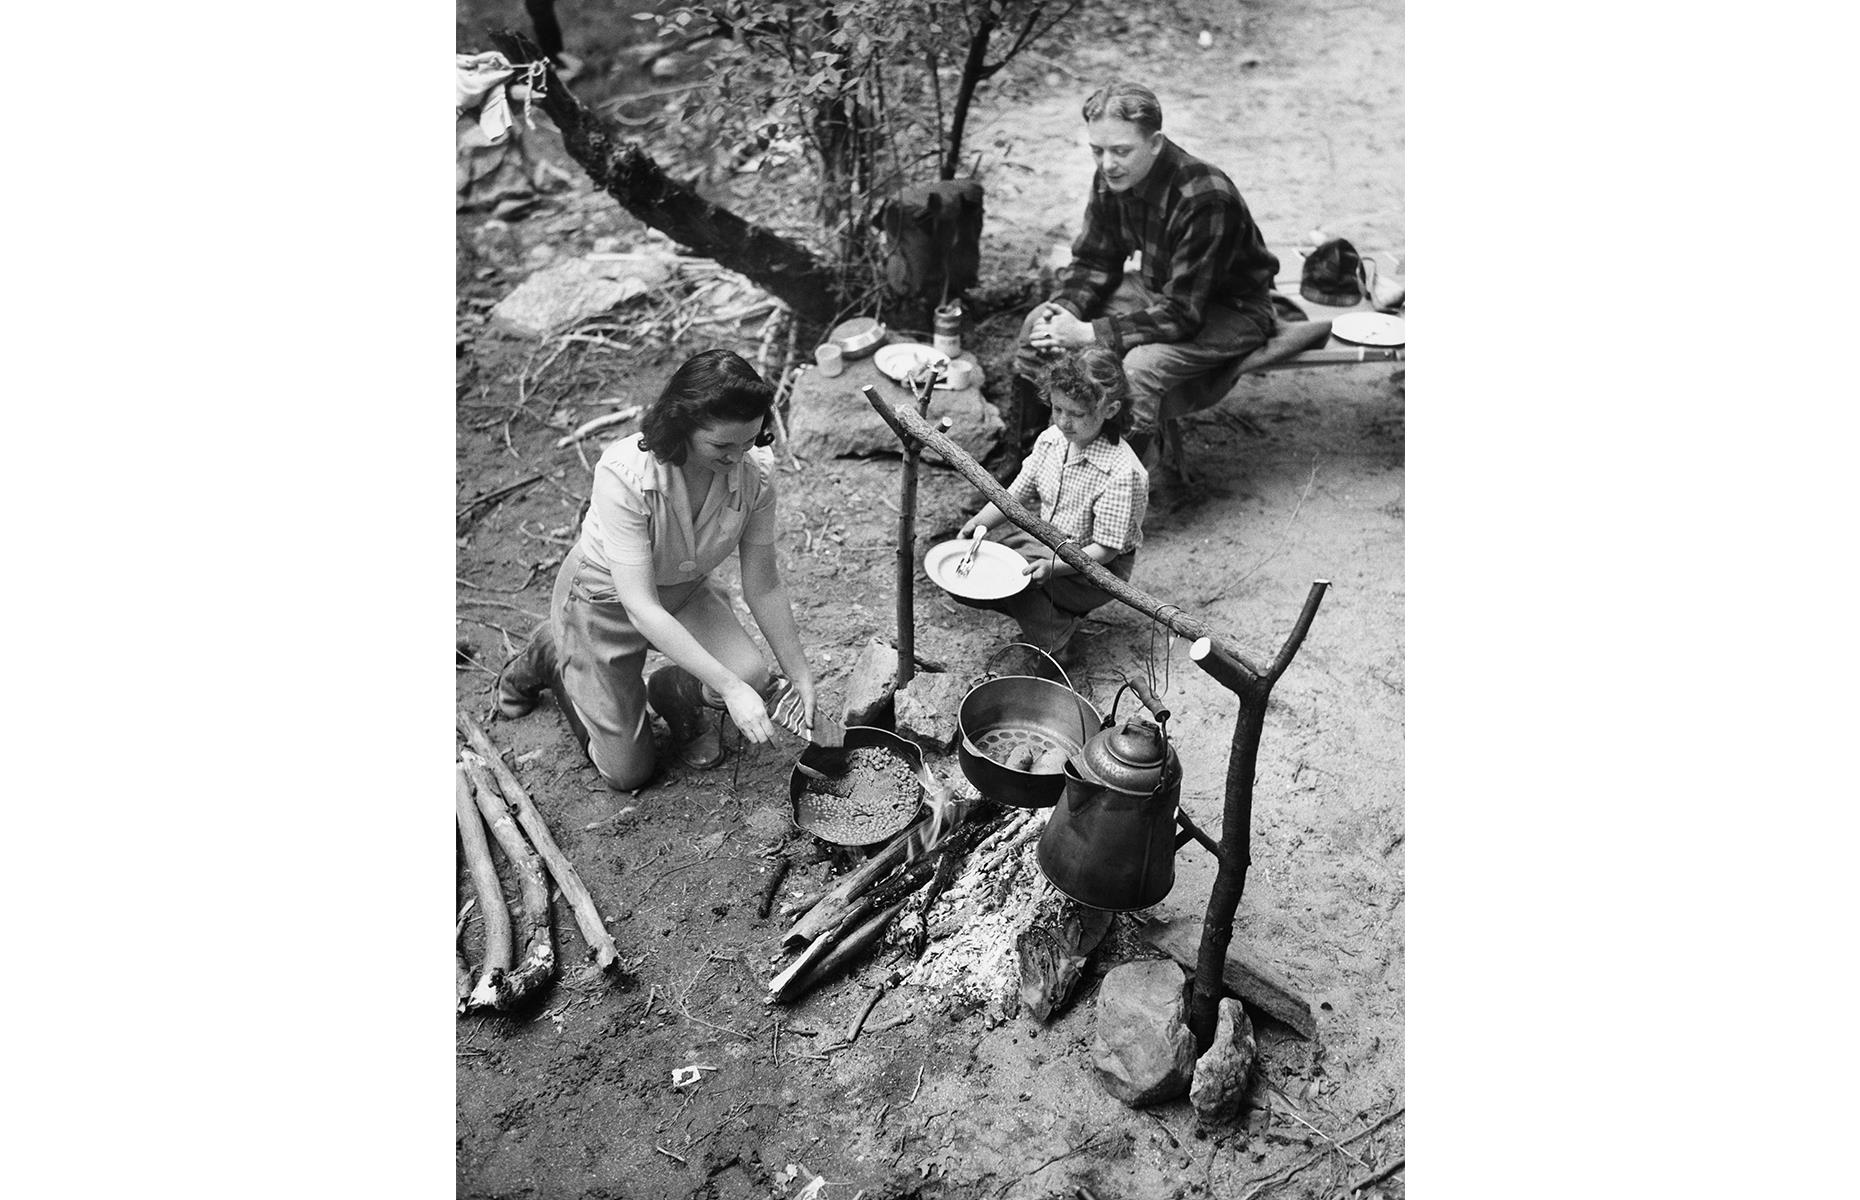 Slide 2 of 38: This was a decade shaped by the Second World War and, even post-war, most families spent their holidaytime close to home. Trailer parks and campsites were top places to escape, with destinations such as the Adirondacks, in New York, proving popular with outdoorsy types. Here a mother serves dinner cooked over a campfire to her family, perhaps after a long day of hiking.